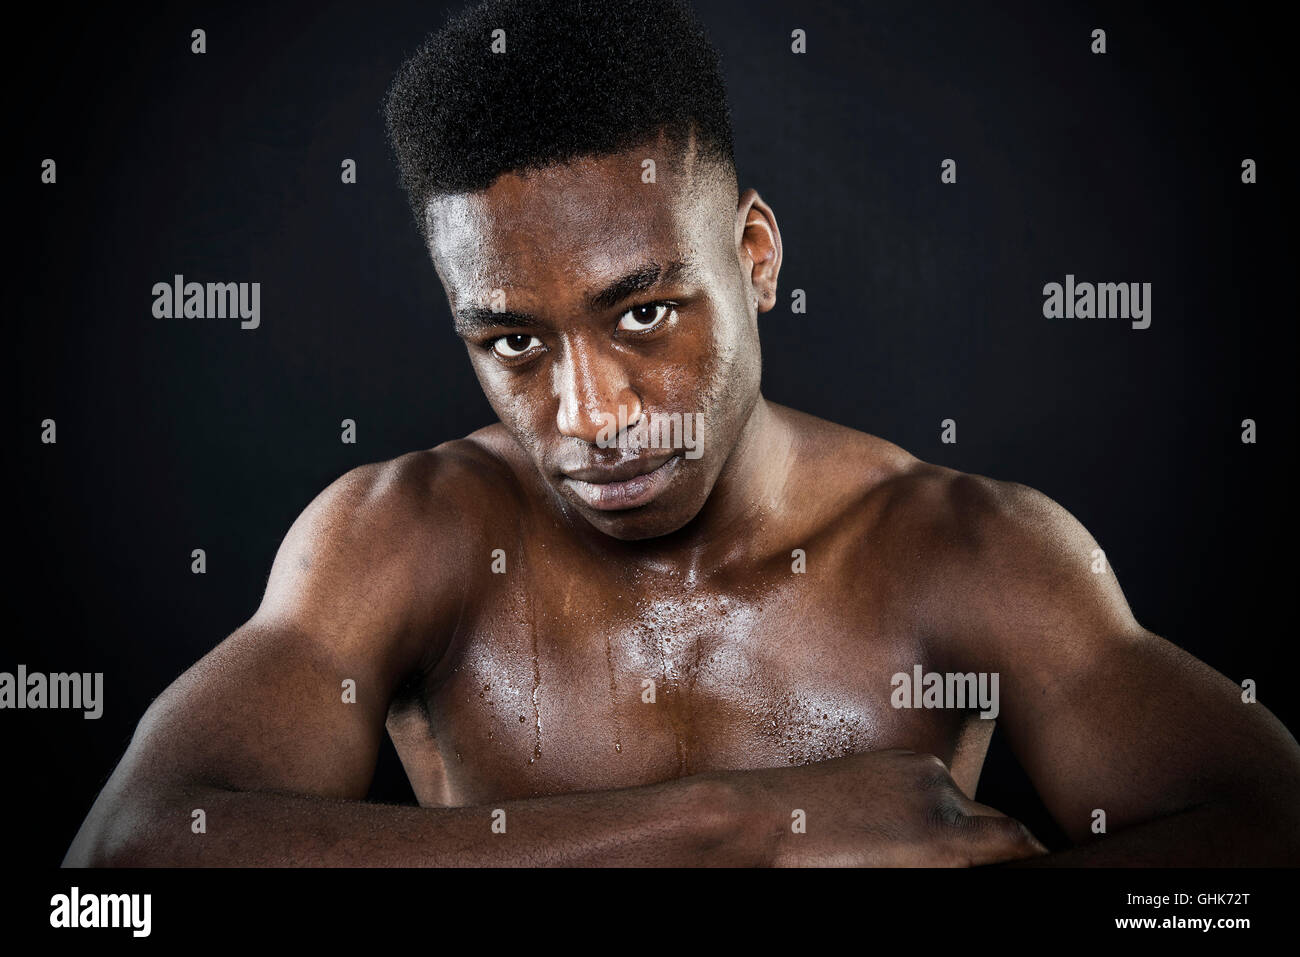 Sportsman athlete  muscular sweating wet face and torso after exercise arms folded  portrait intense look isolated - Stock Image